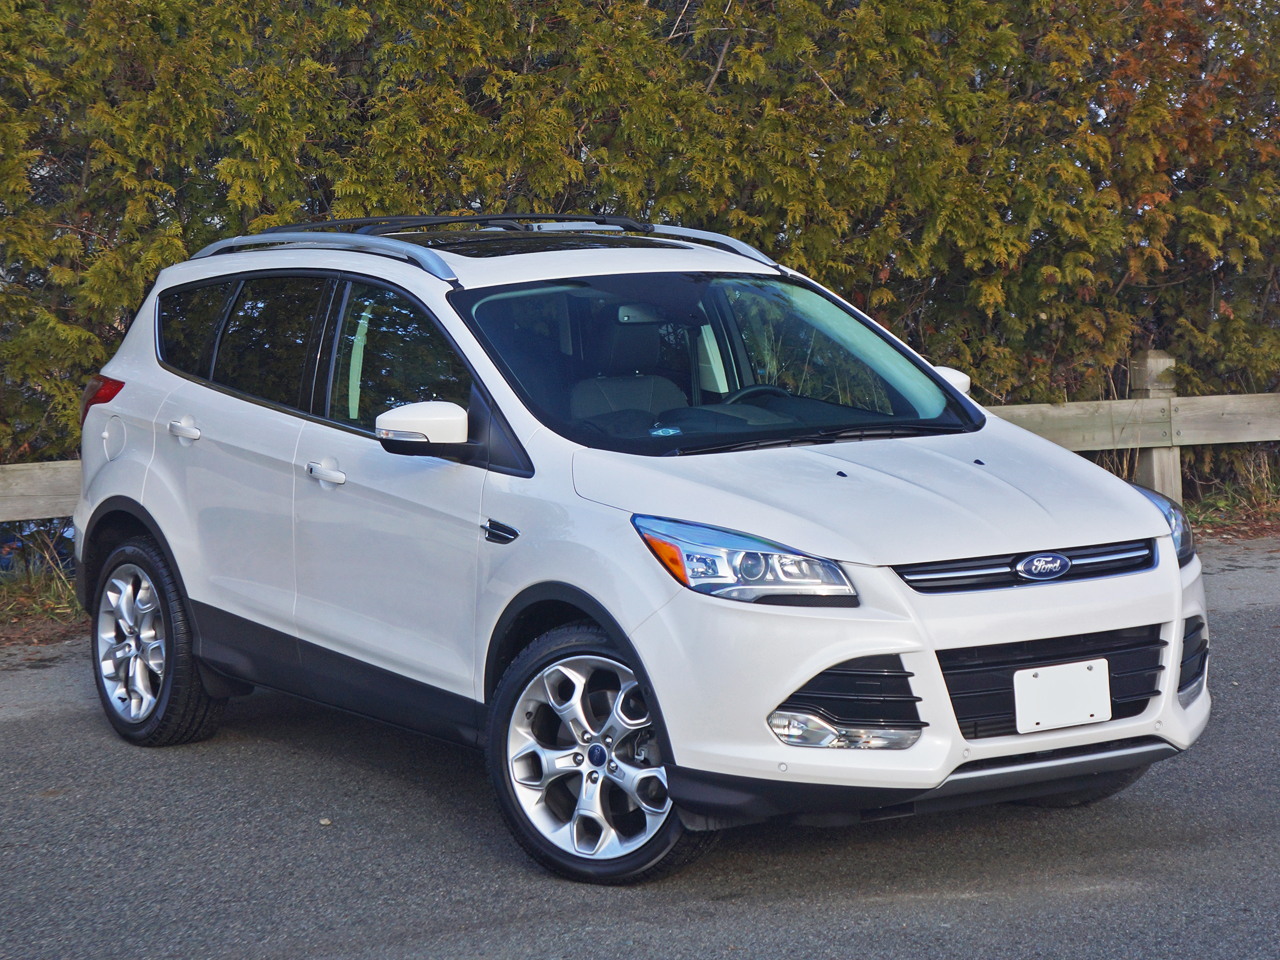 2016 Ford Escape Anium 4wd Road Test Review